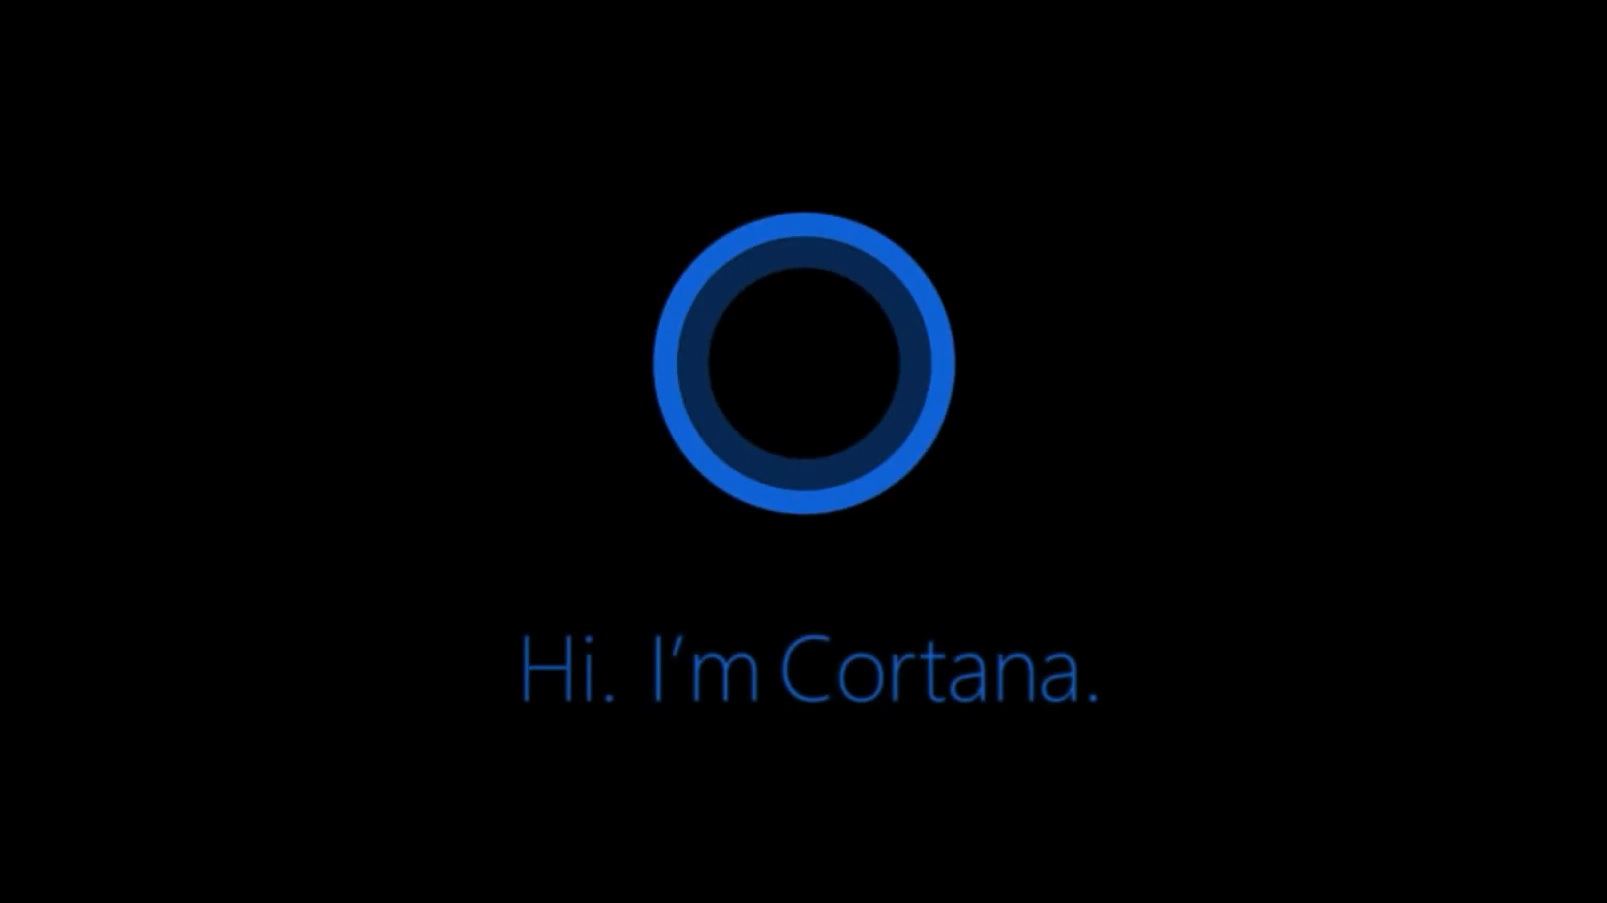 SCARICA CORTANA IN ITALIANO